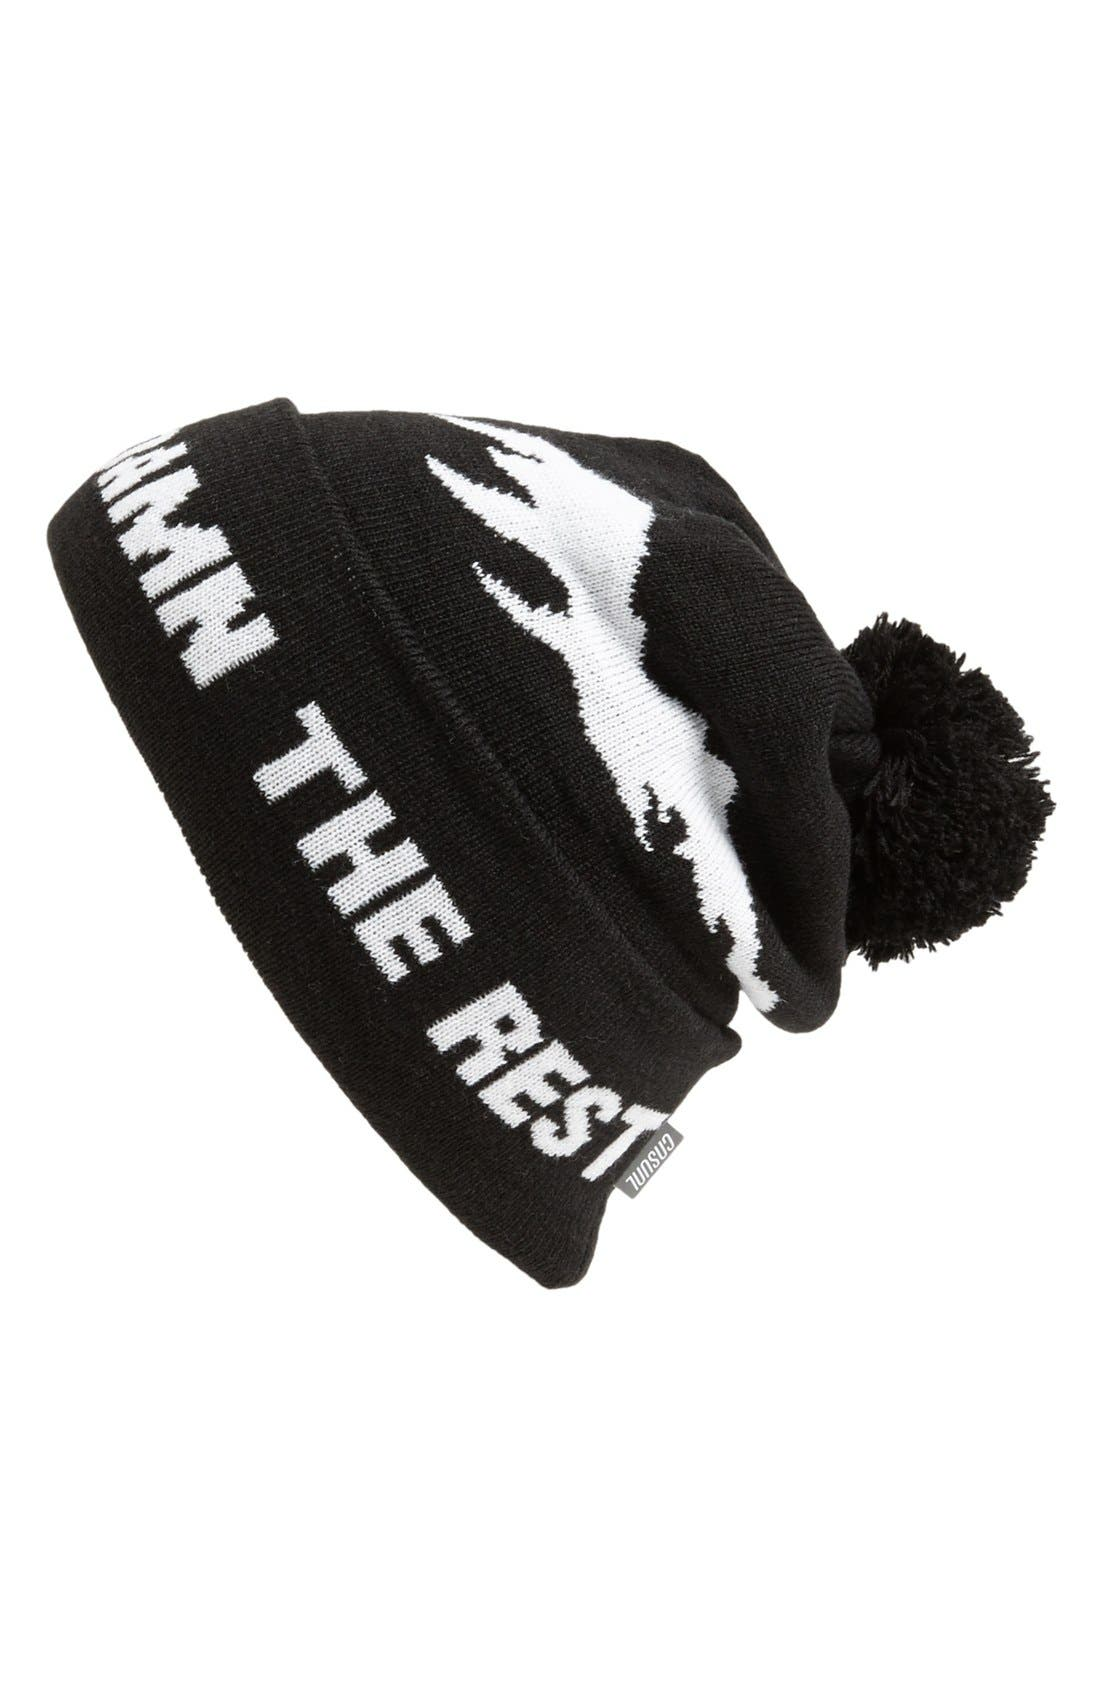 Alternate Image 1 Selected - Casual Industrees Knit Cap with Pompom